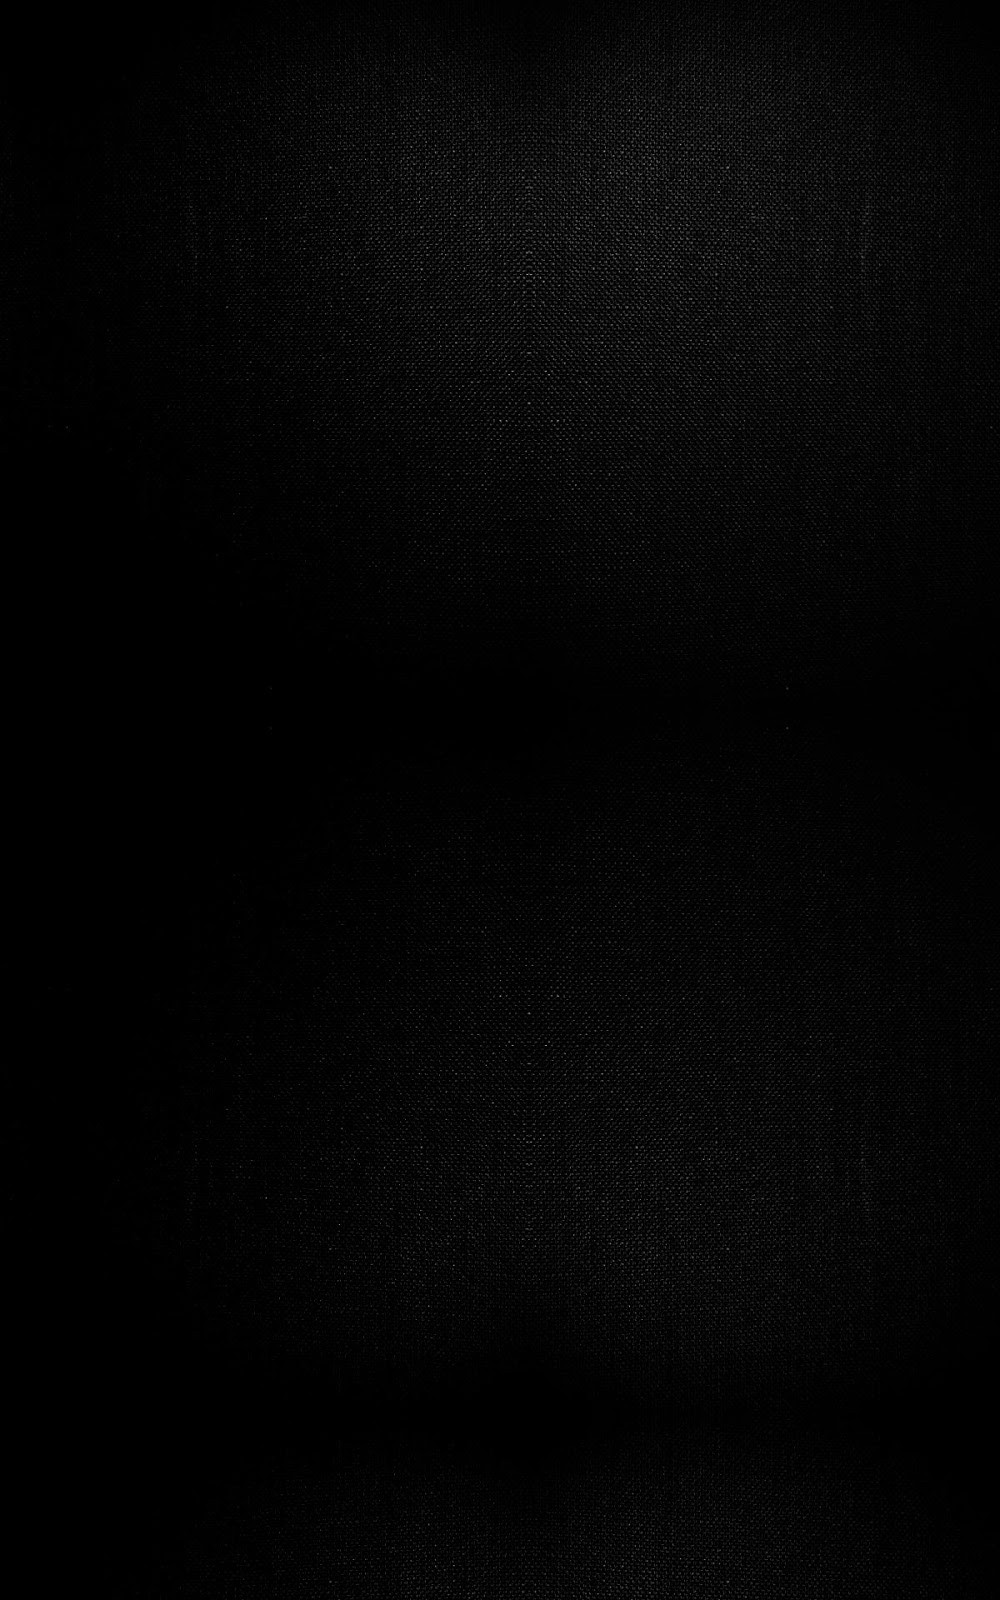 Iphone Wallpaper Black Posted By Michelle Mercado